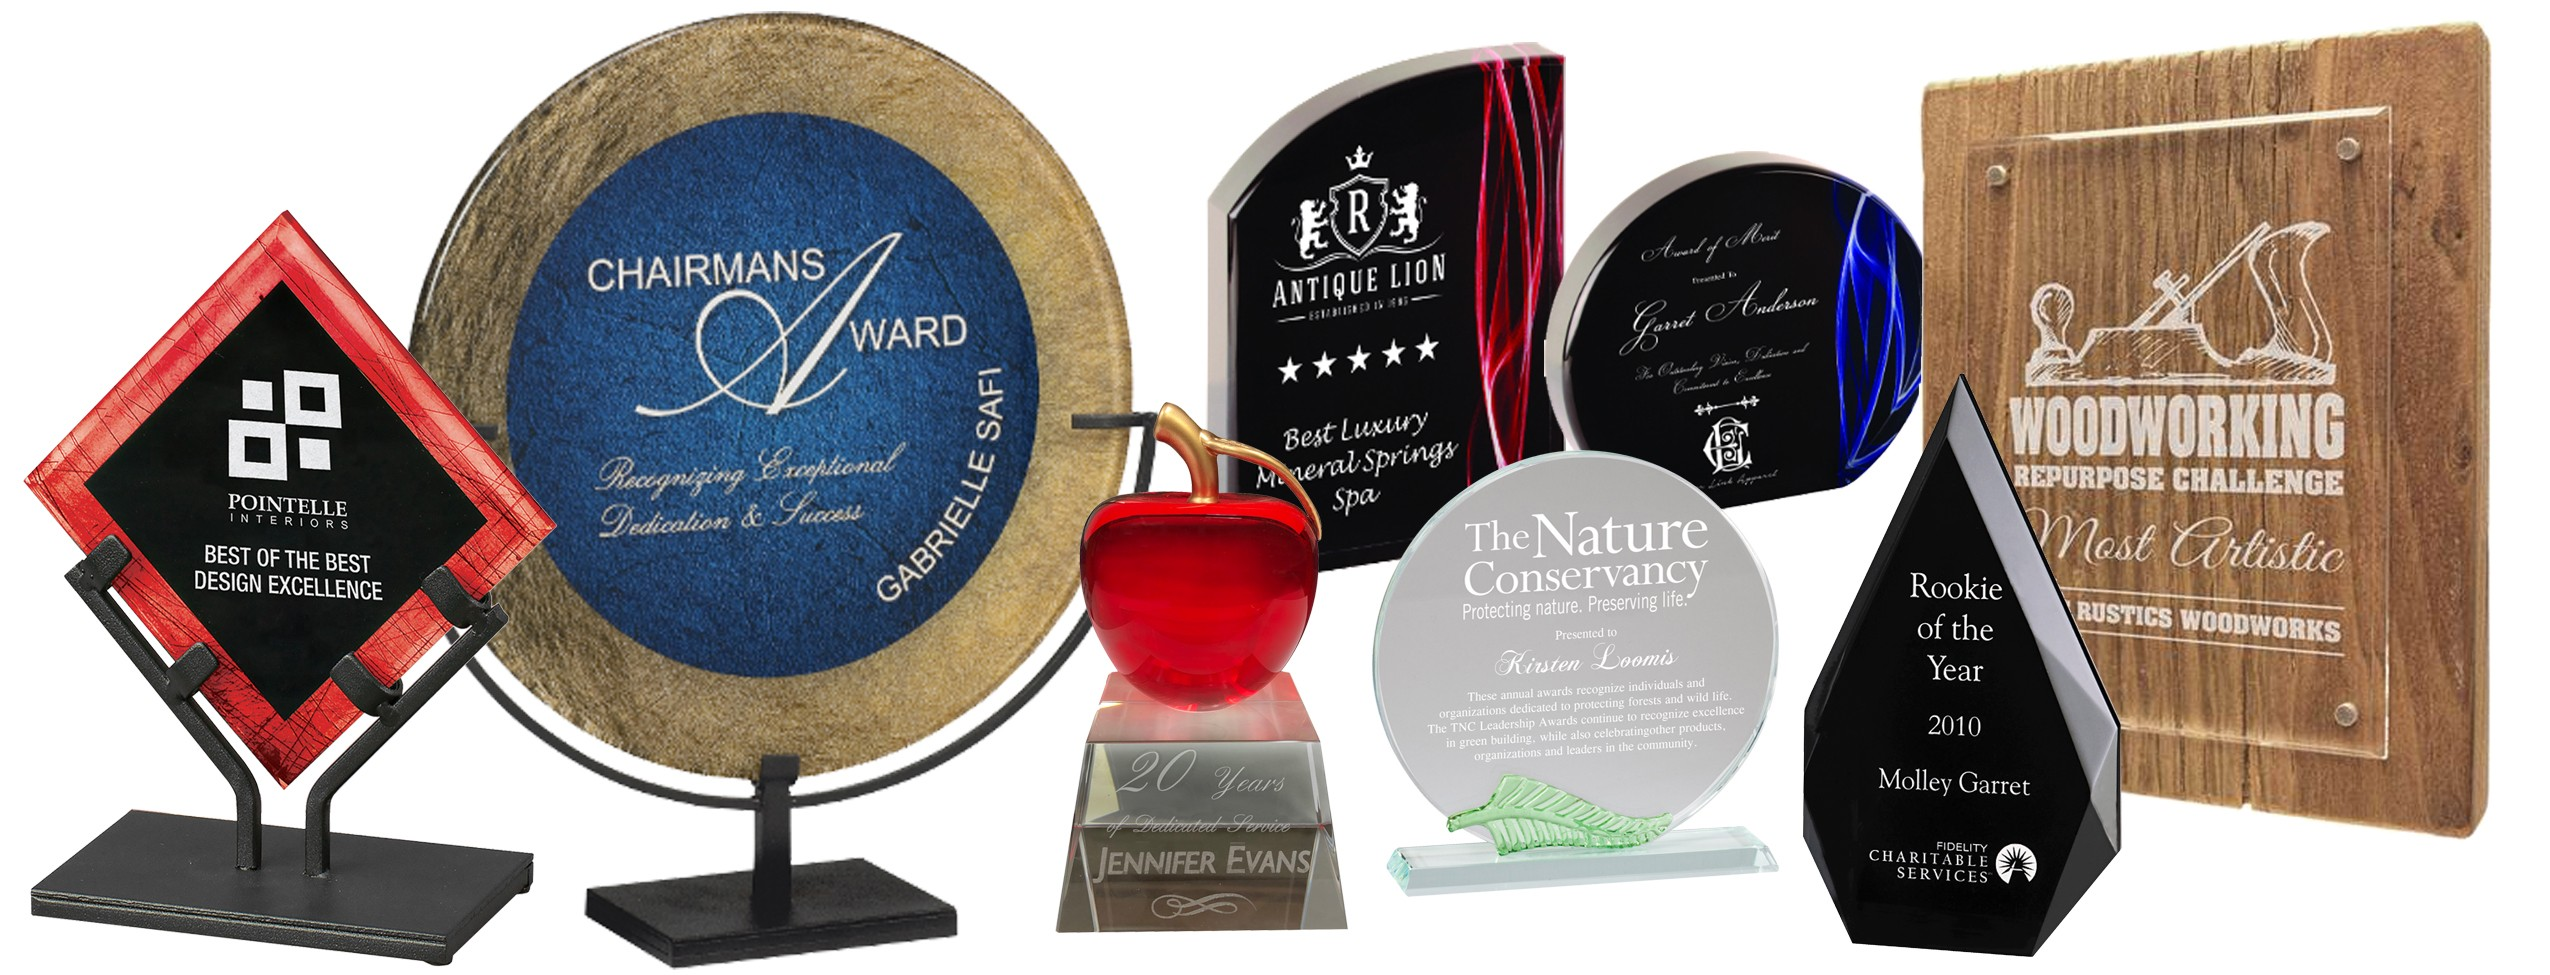 Plaques - Huge Variety!